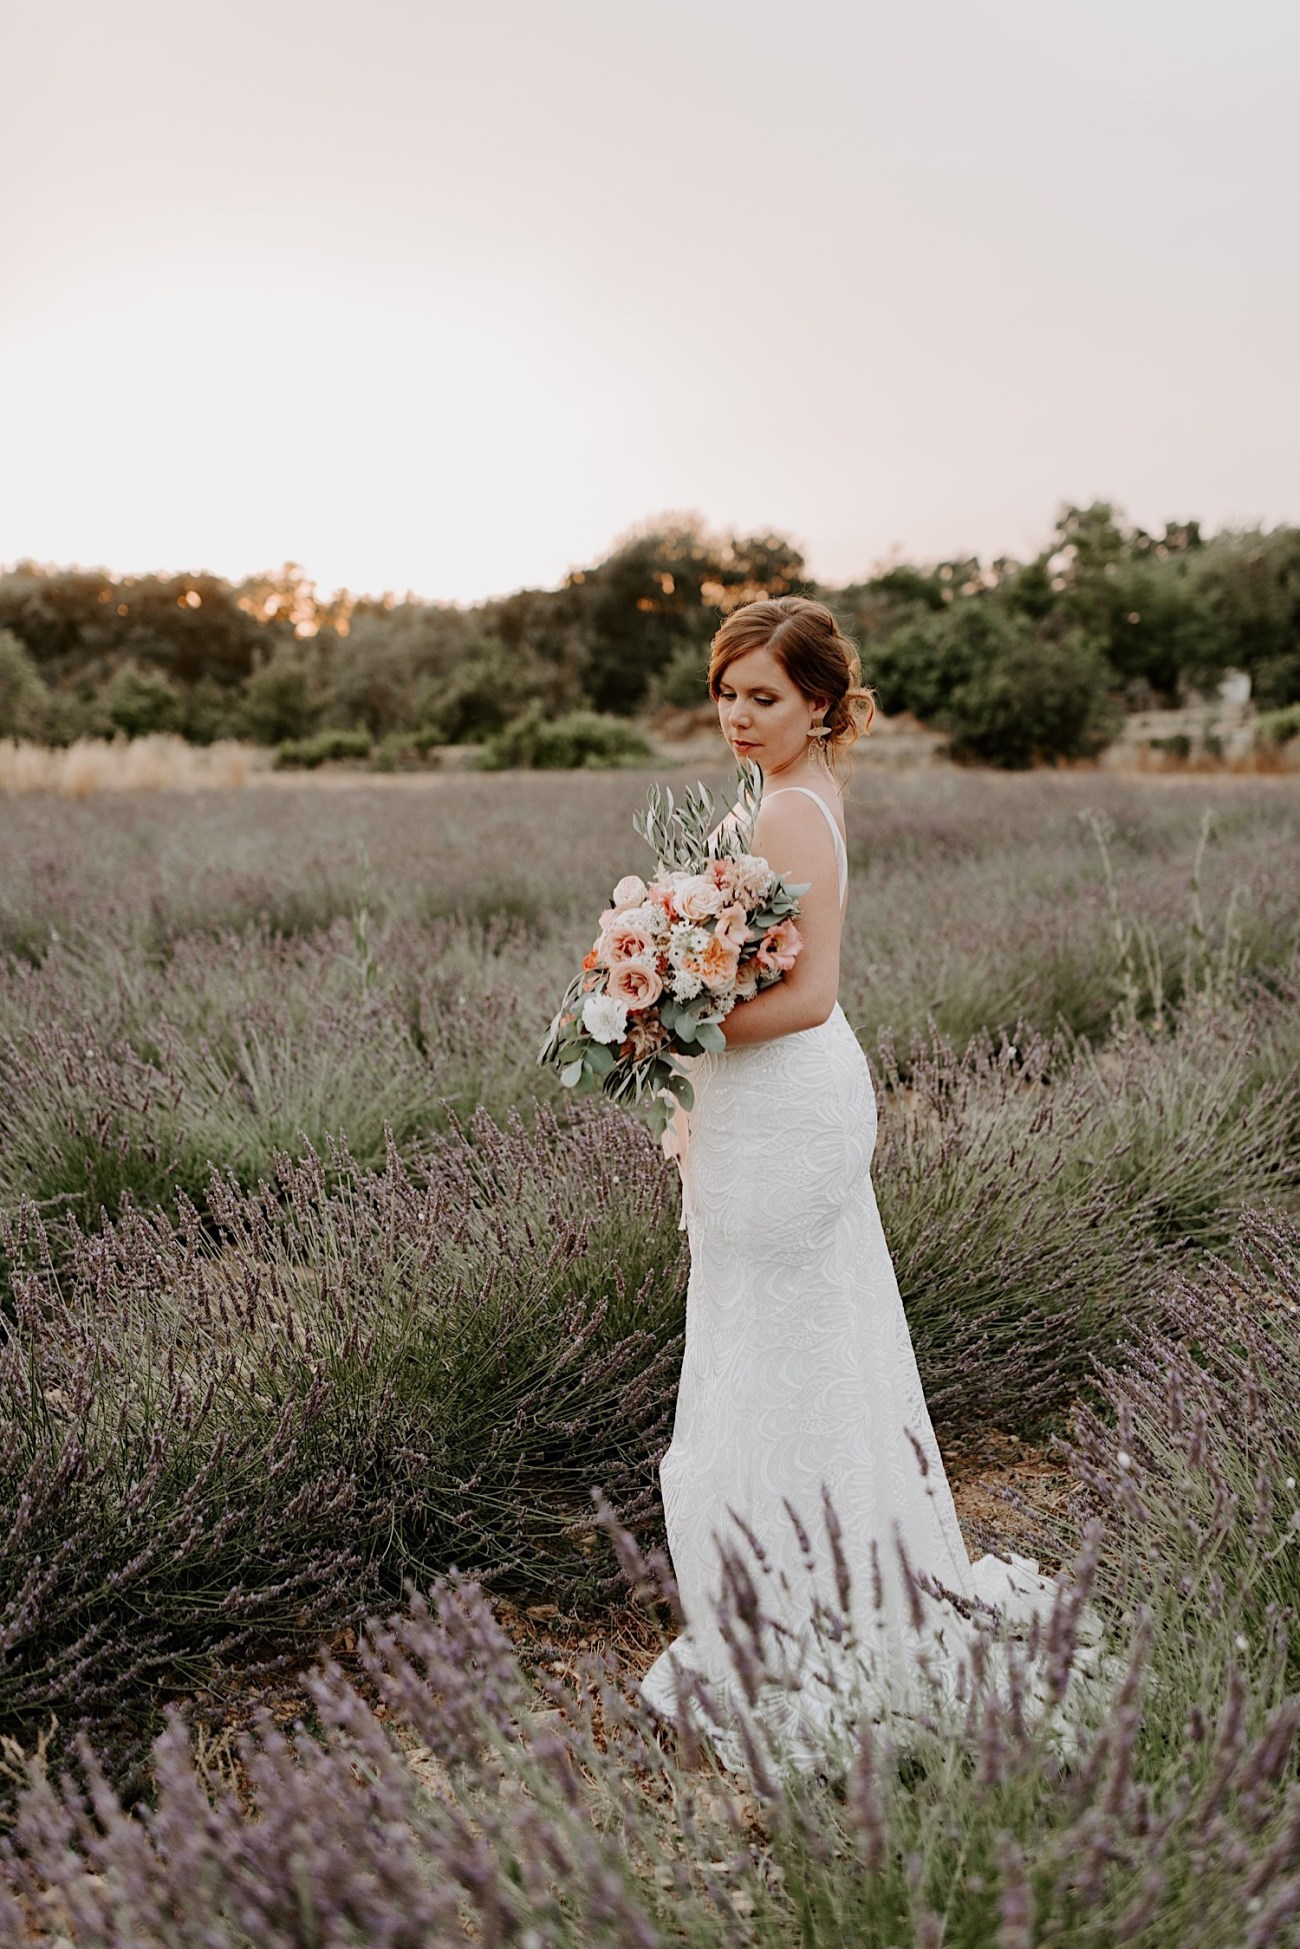 Terre Ugo Un Marriage En Provence Lavender Field Wedding French Wedding Provence Wedding Destination Wedding France Photographe De Marriage Provence France Anais Possamai Photography 29